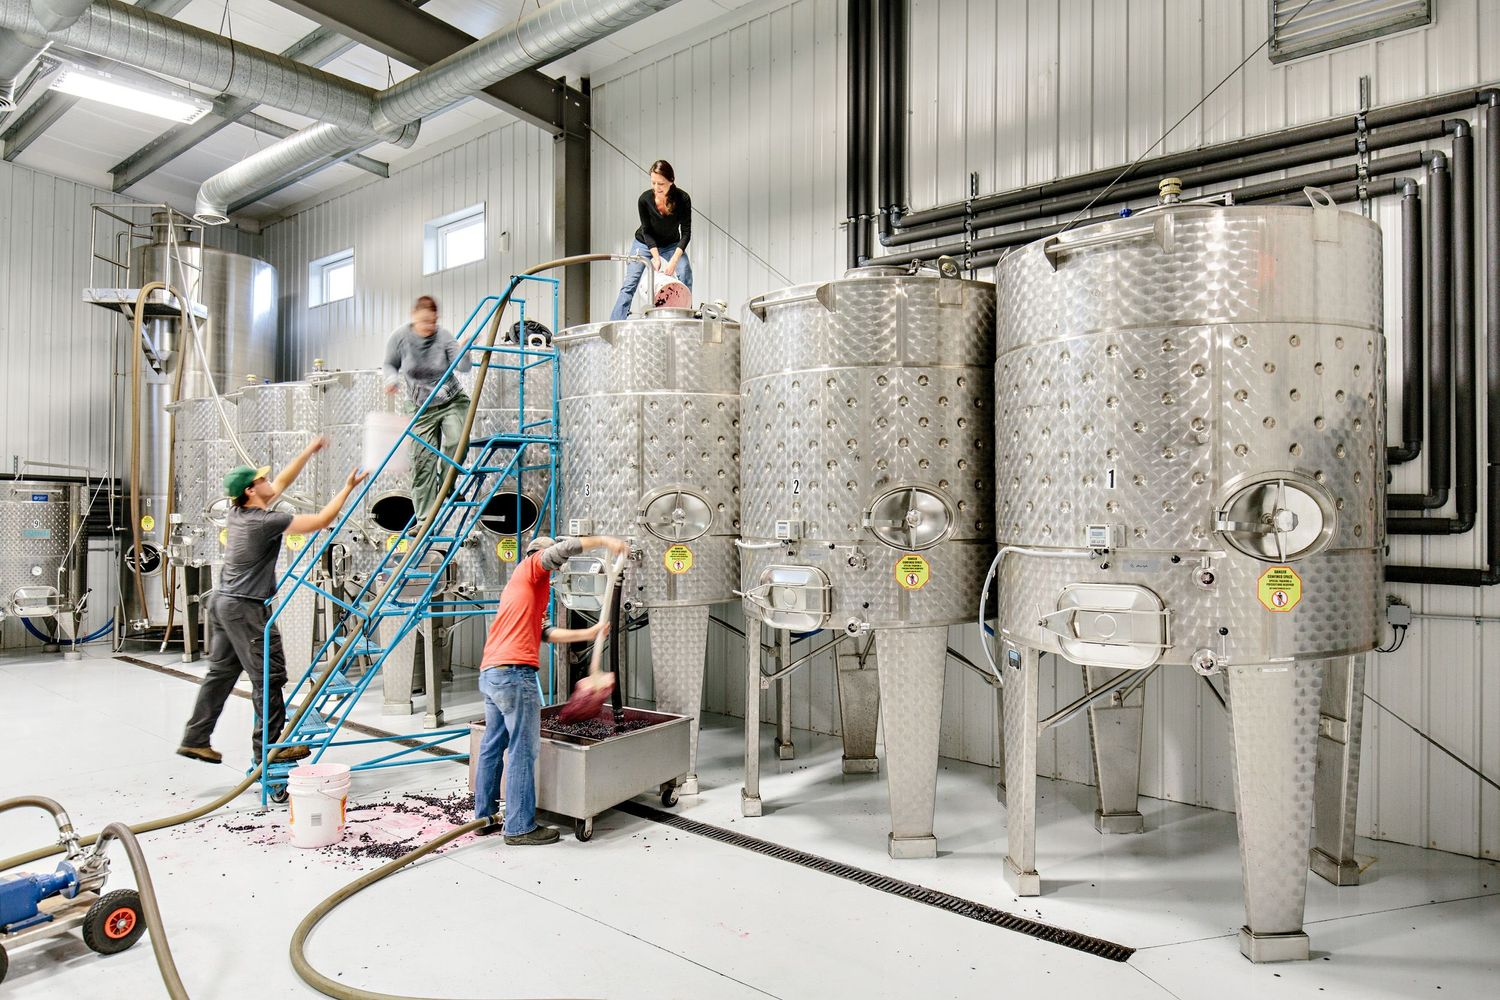 filling tanks with grapes